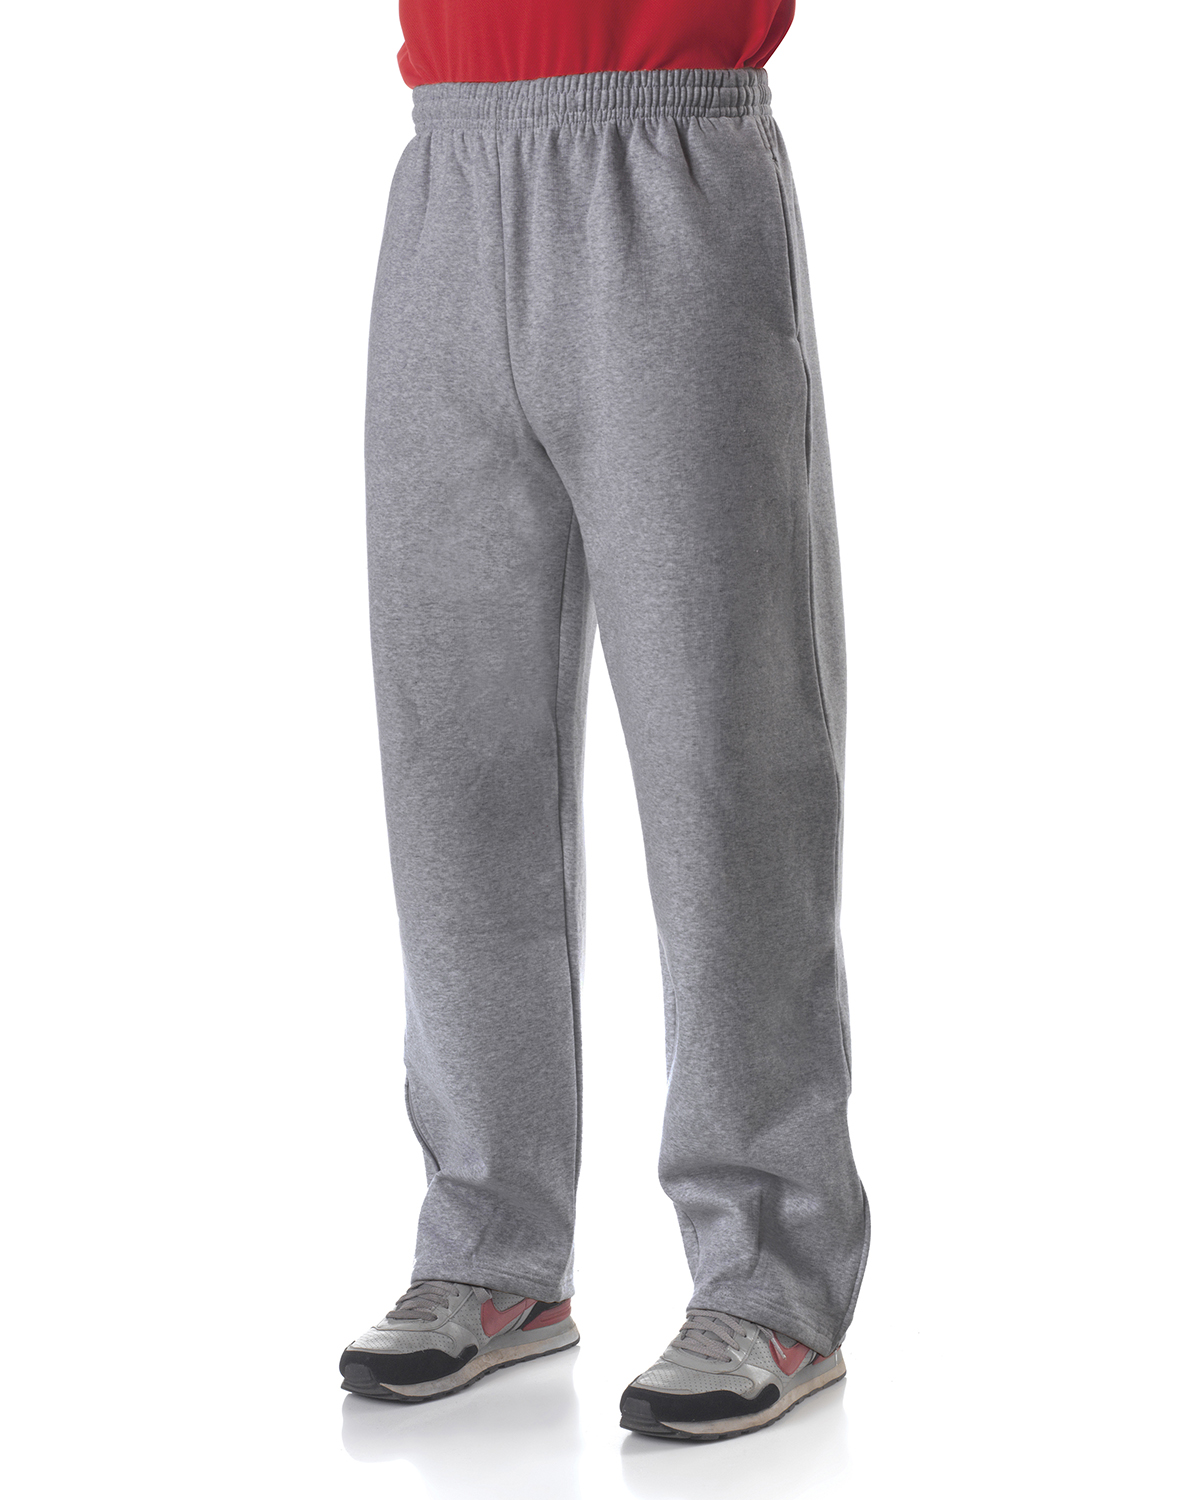 A4 Drop Ship N6189 - Men's Open Bottom Pocketed Fleece ...